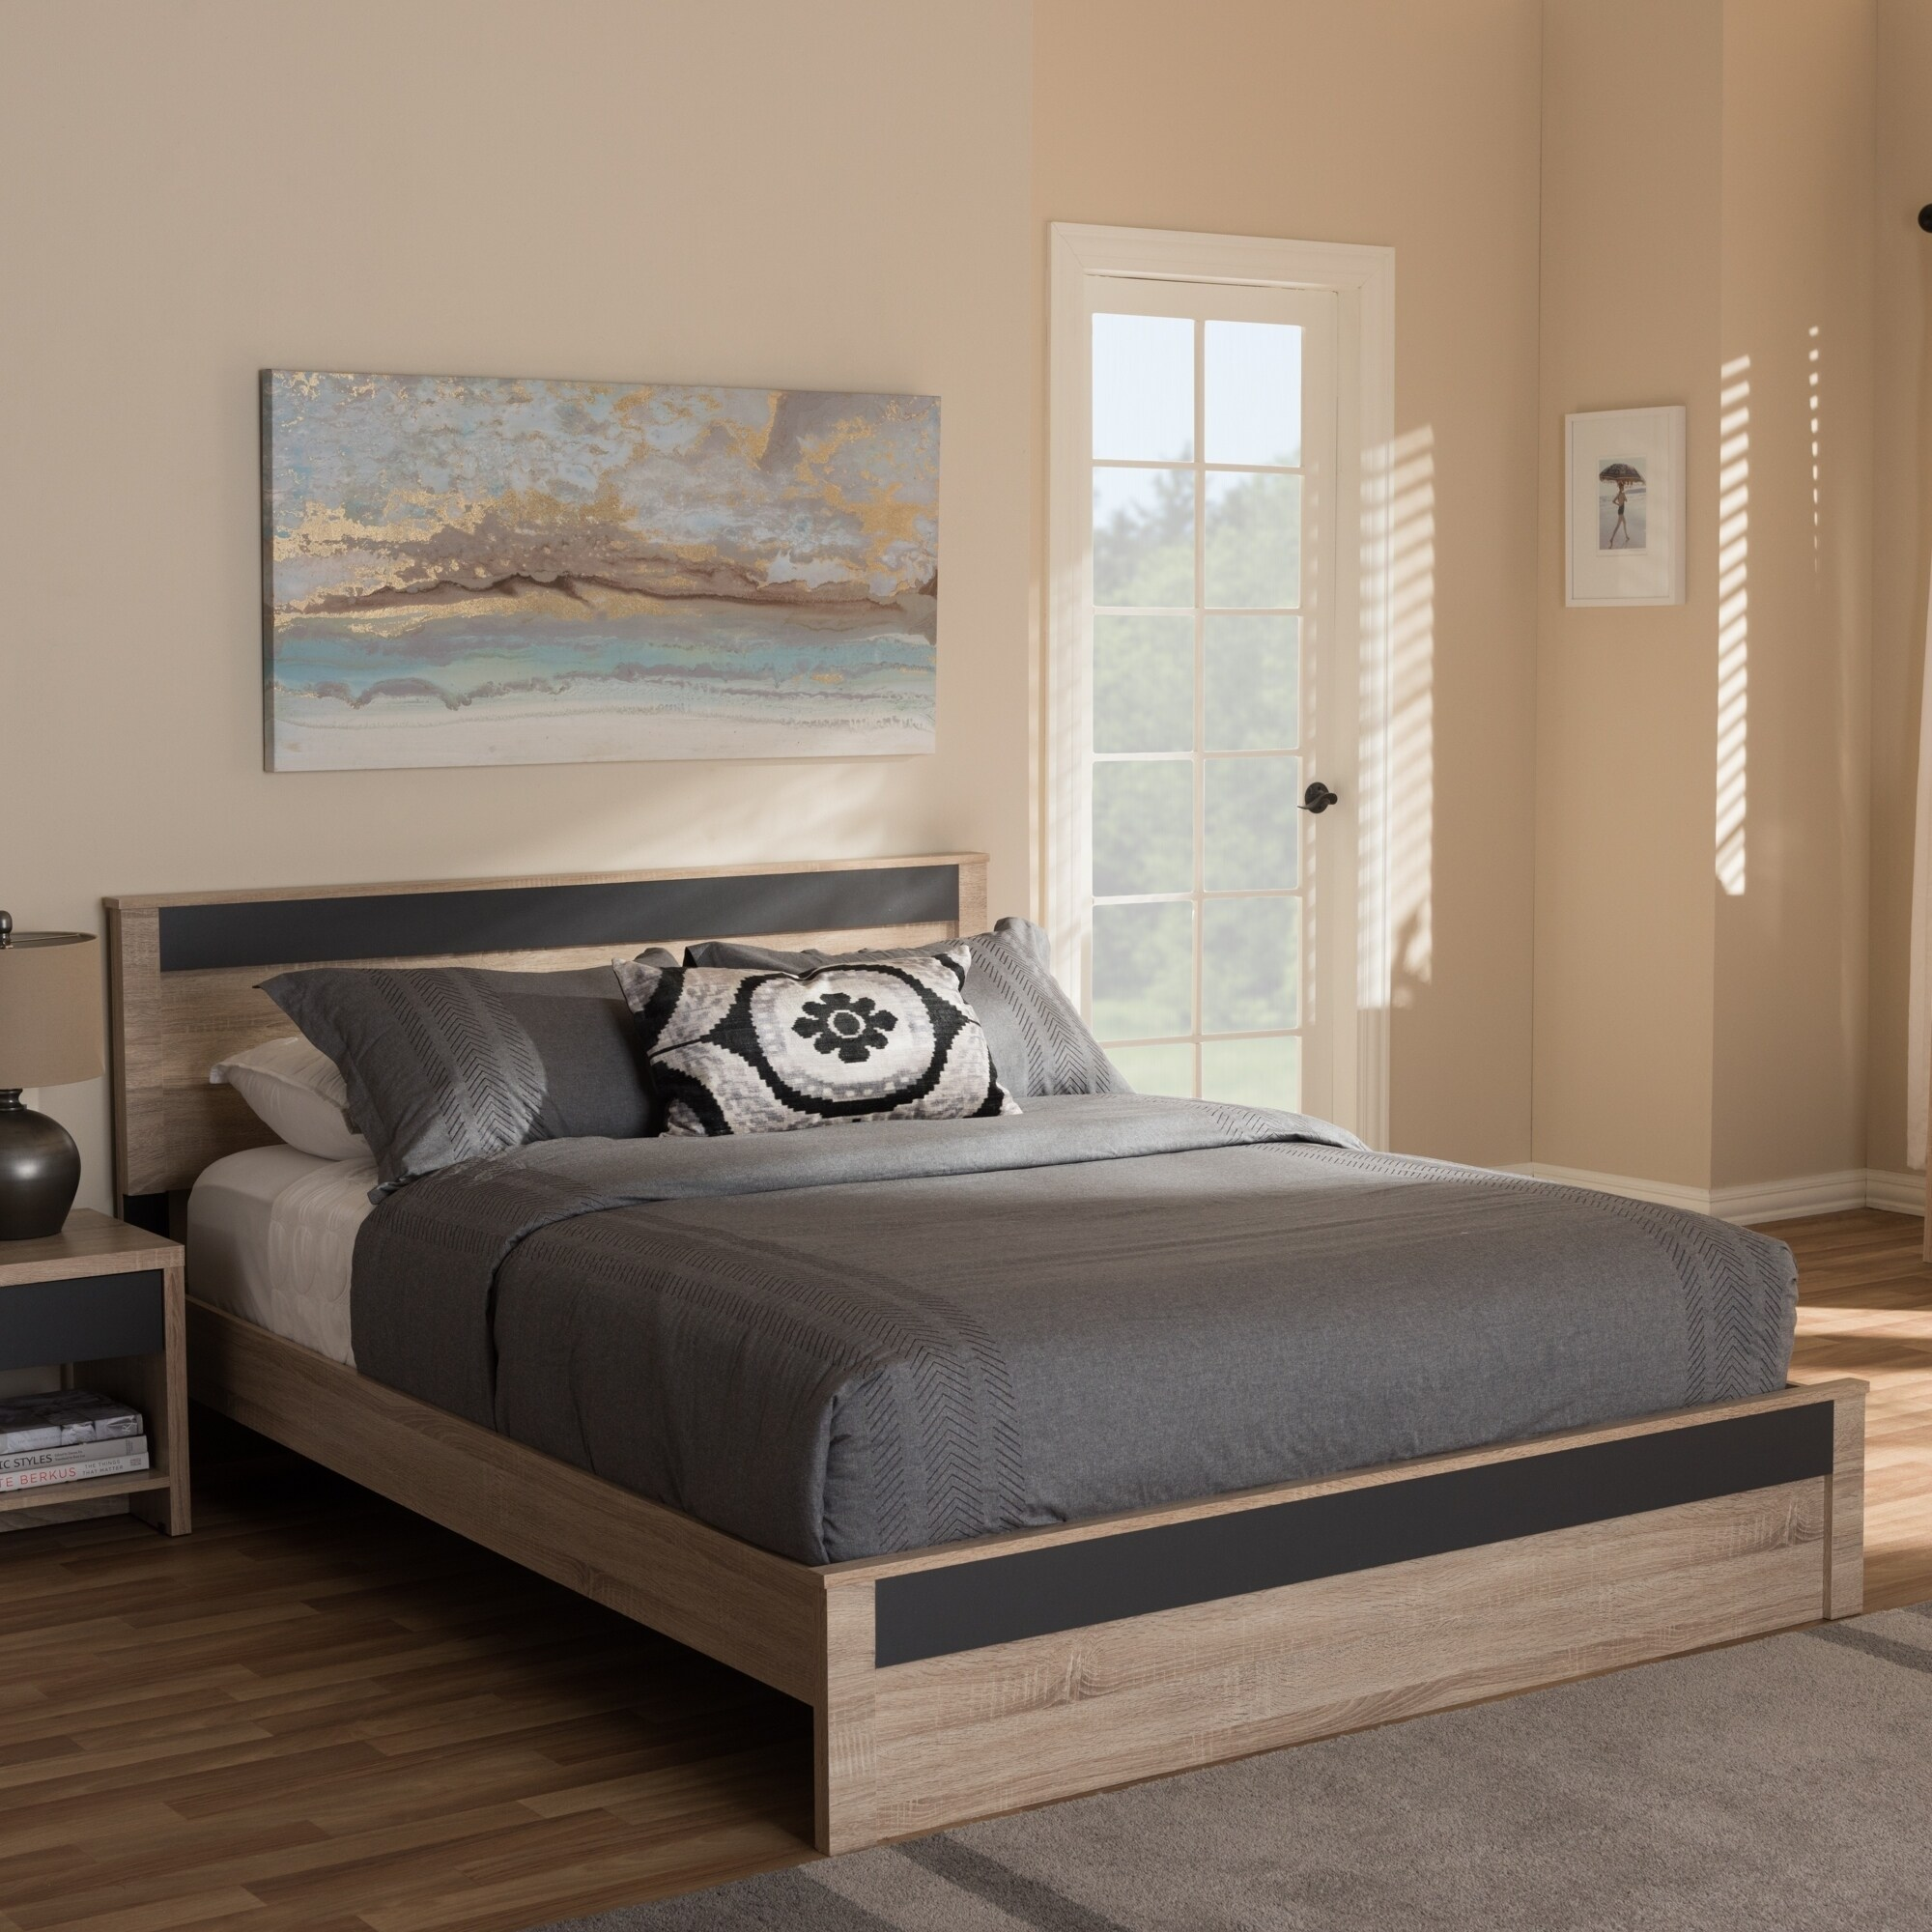 Shop Contemporary Light Brown And Gray Wood Platform Bed